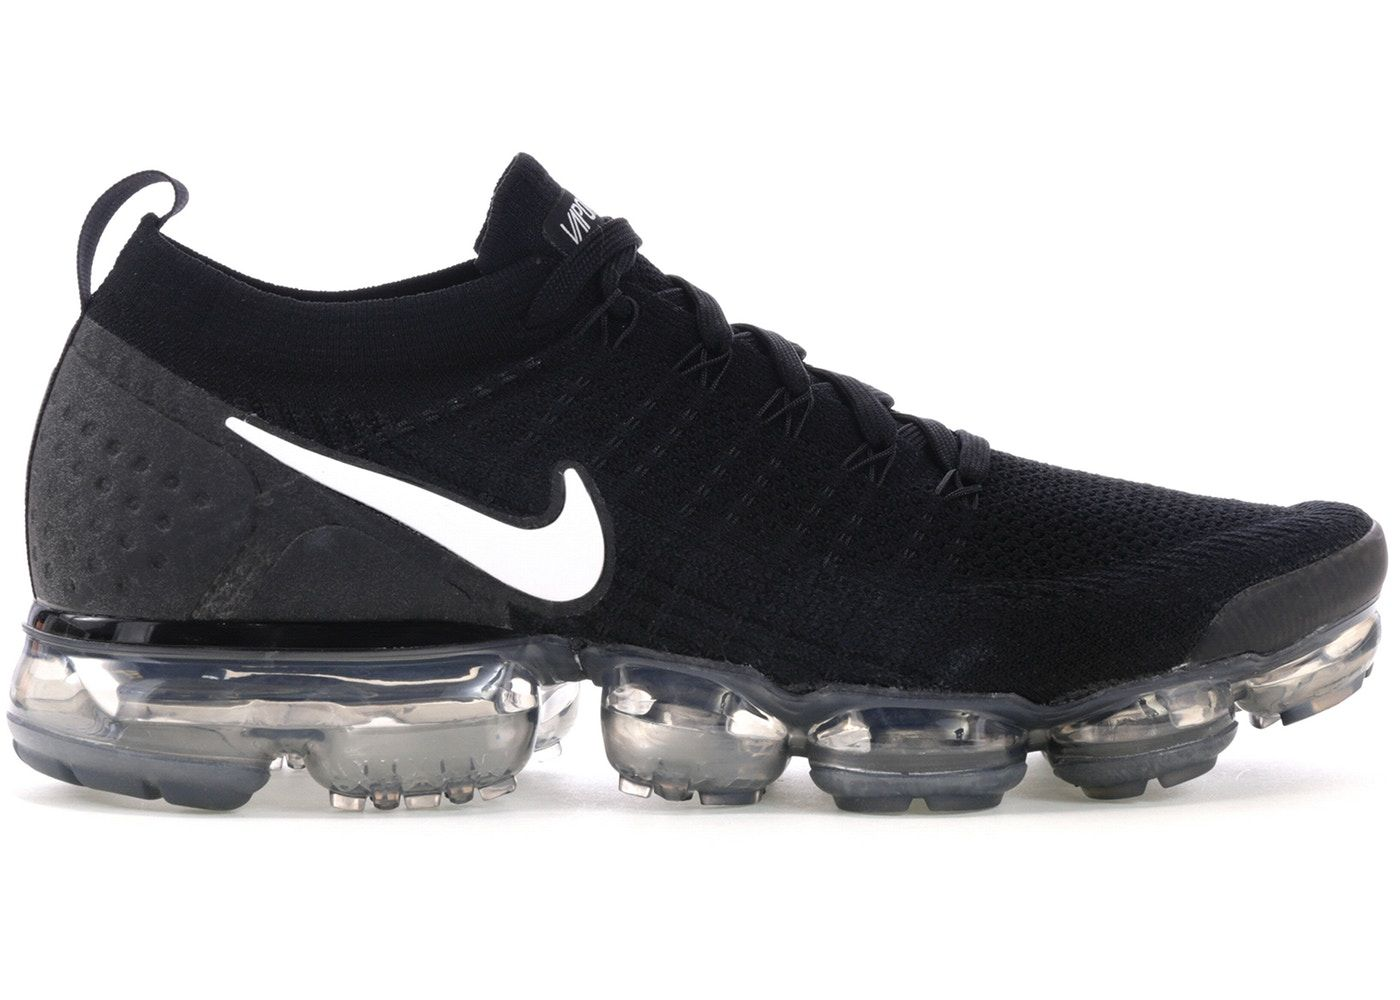 Nike VaporMax 2 Black White | Hypebeast Christmas in 2019